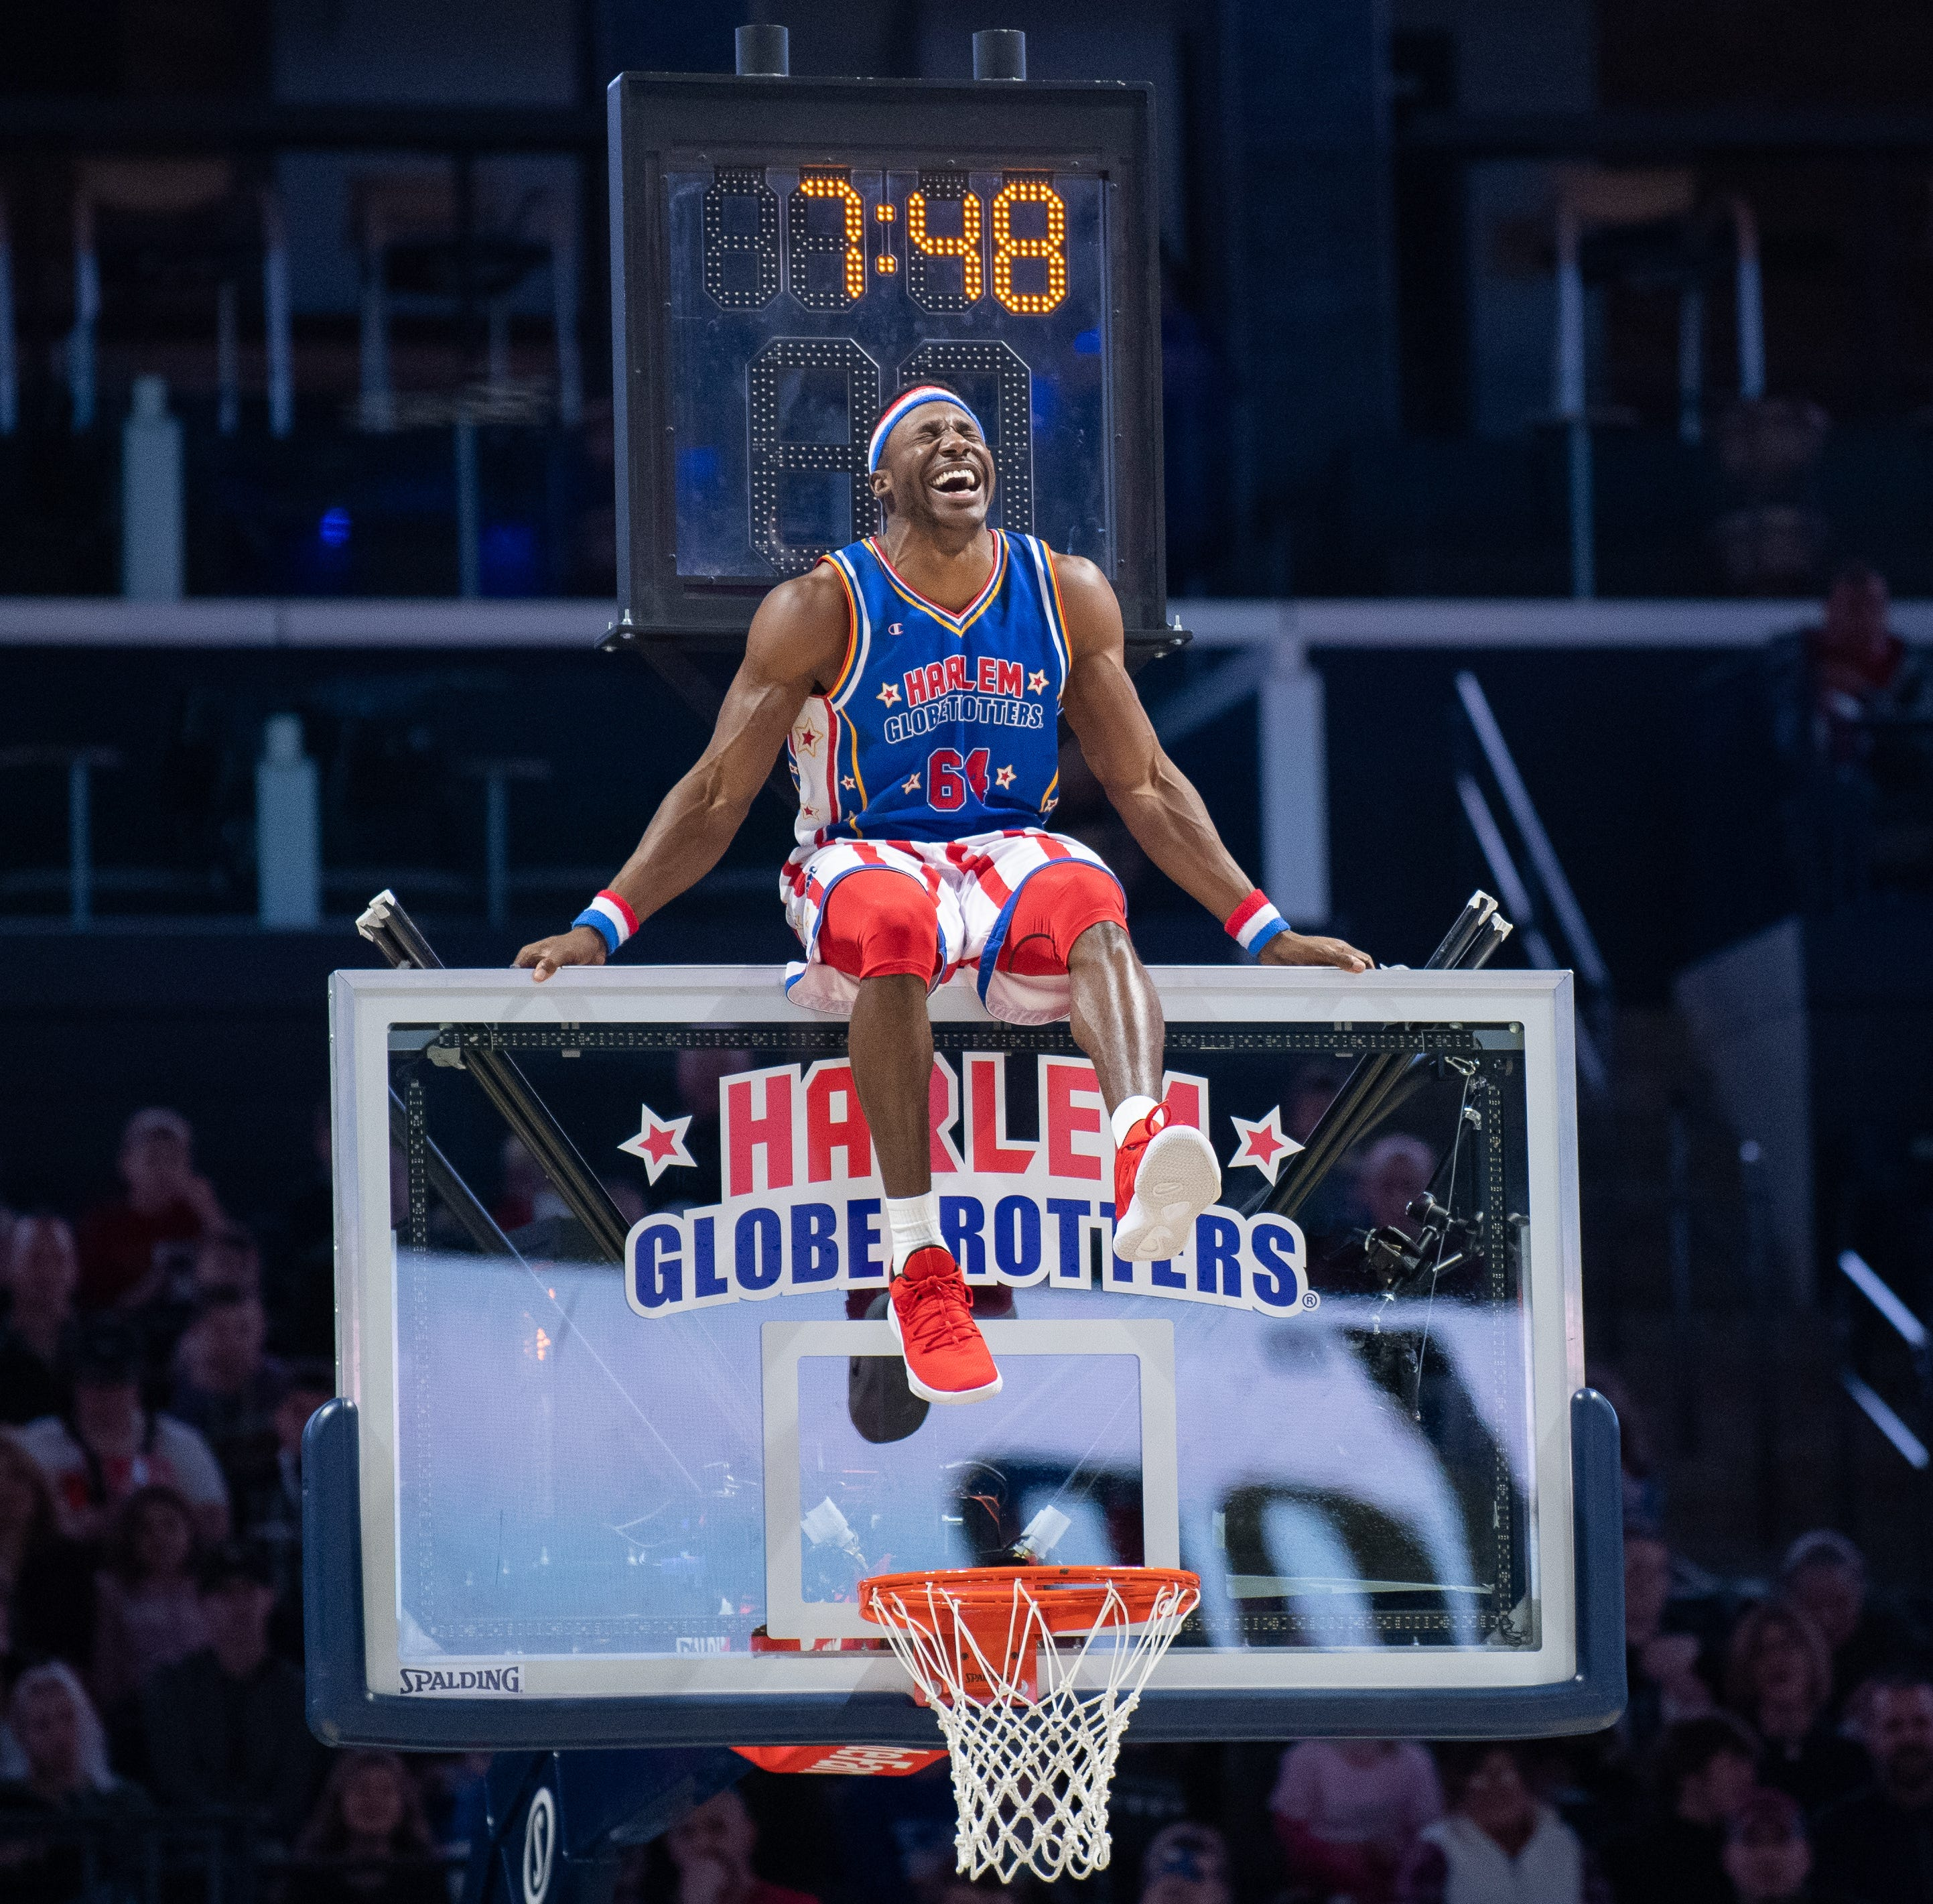 Harlem Globetrotters to return to the arena with new 'Fan Powered World Tour'